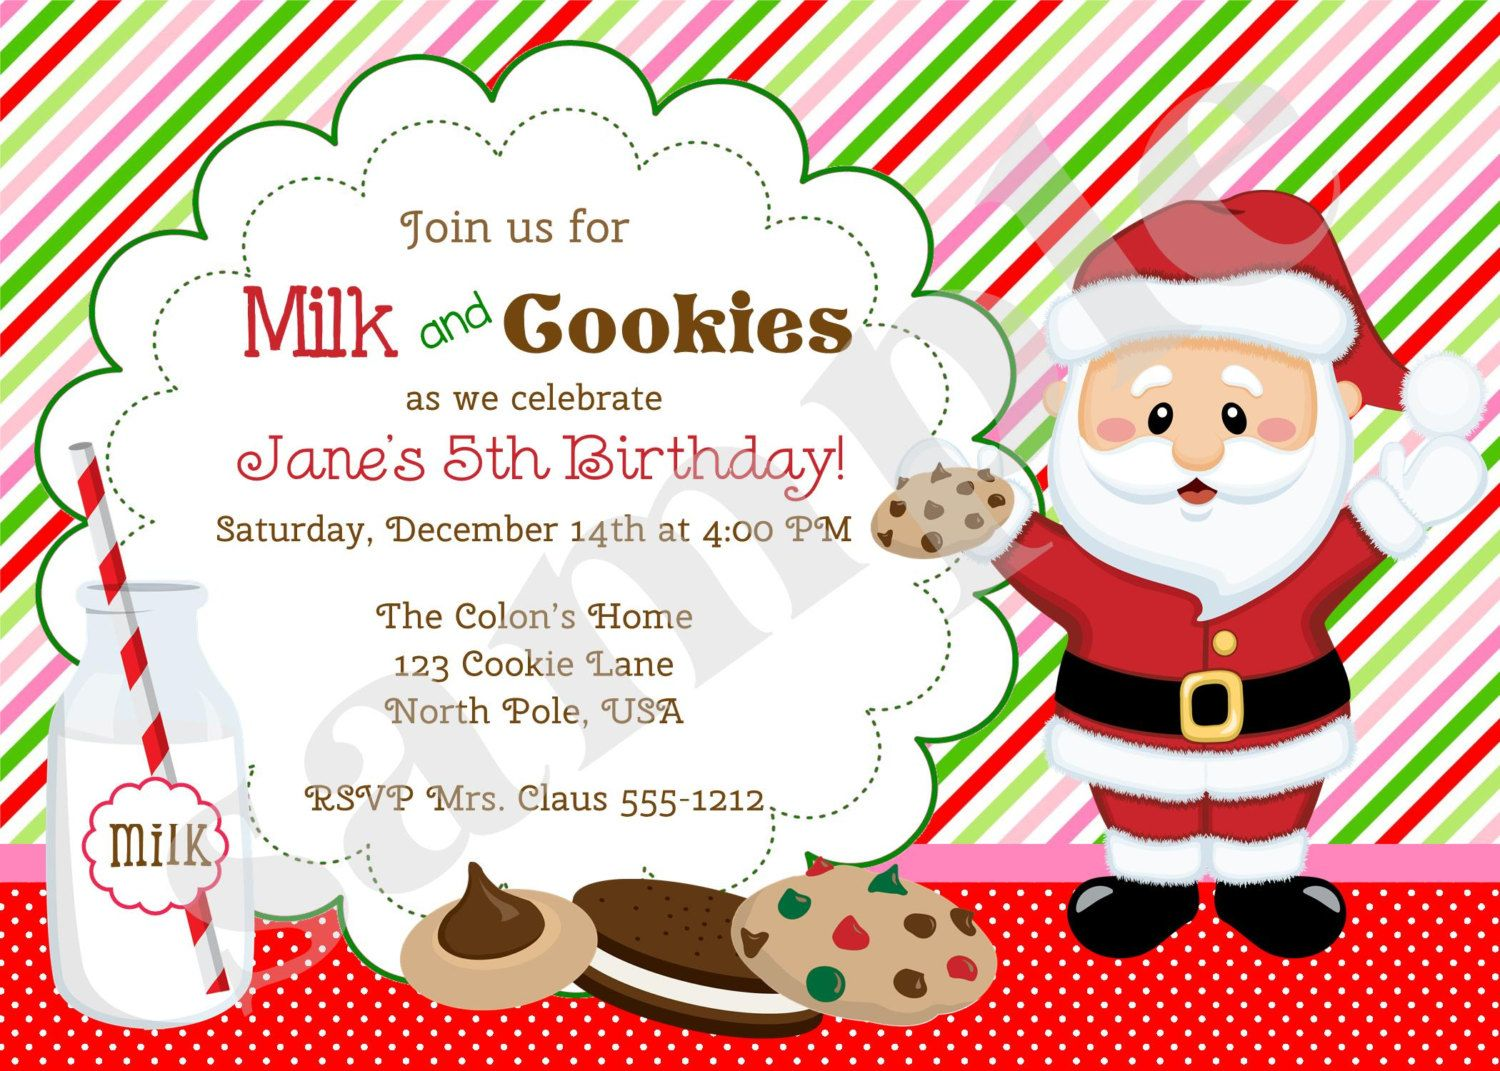 Milk and Cookies Invitation Invite Cookies with Santa Holiday Cookie ...